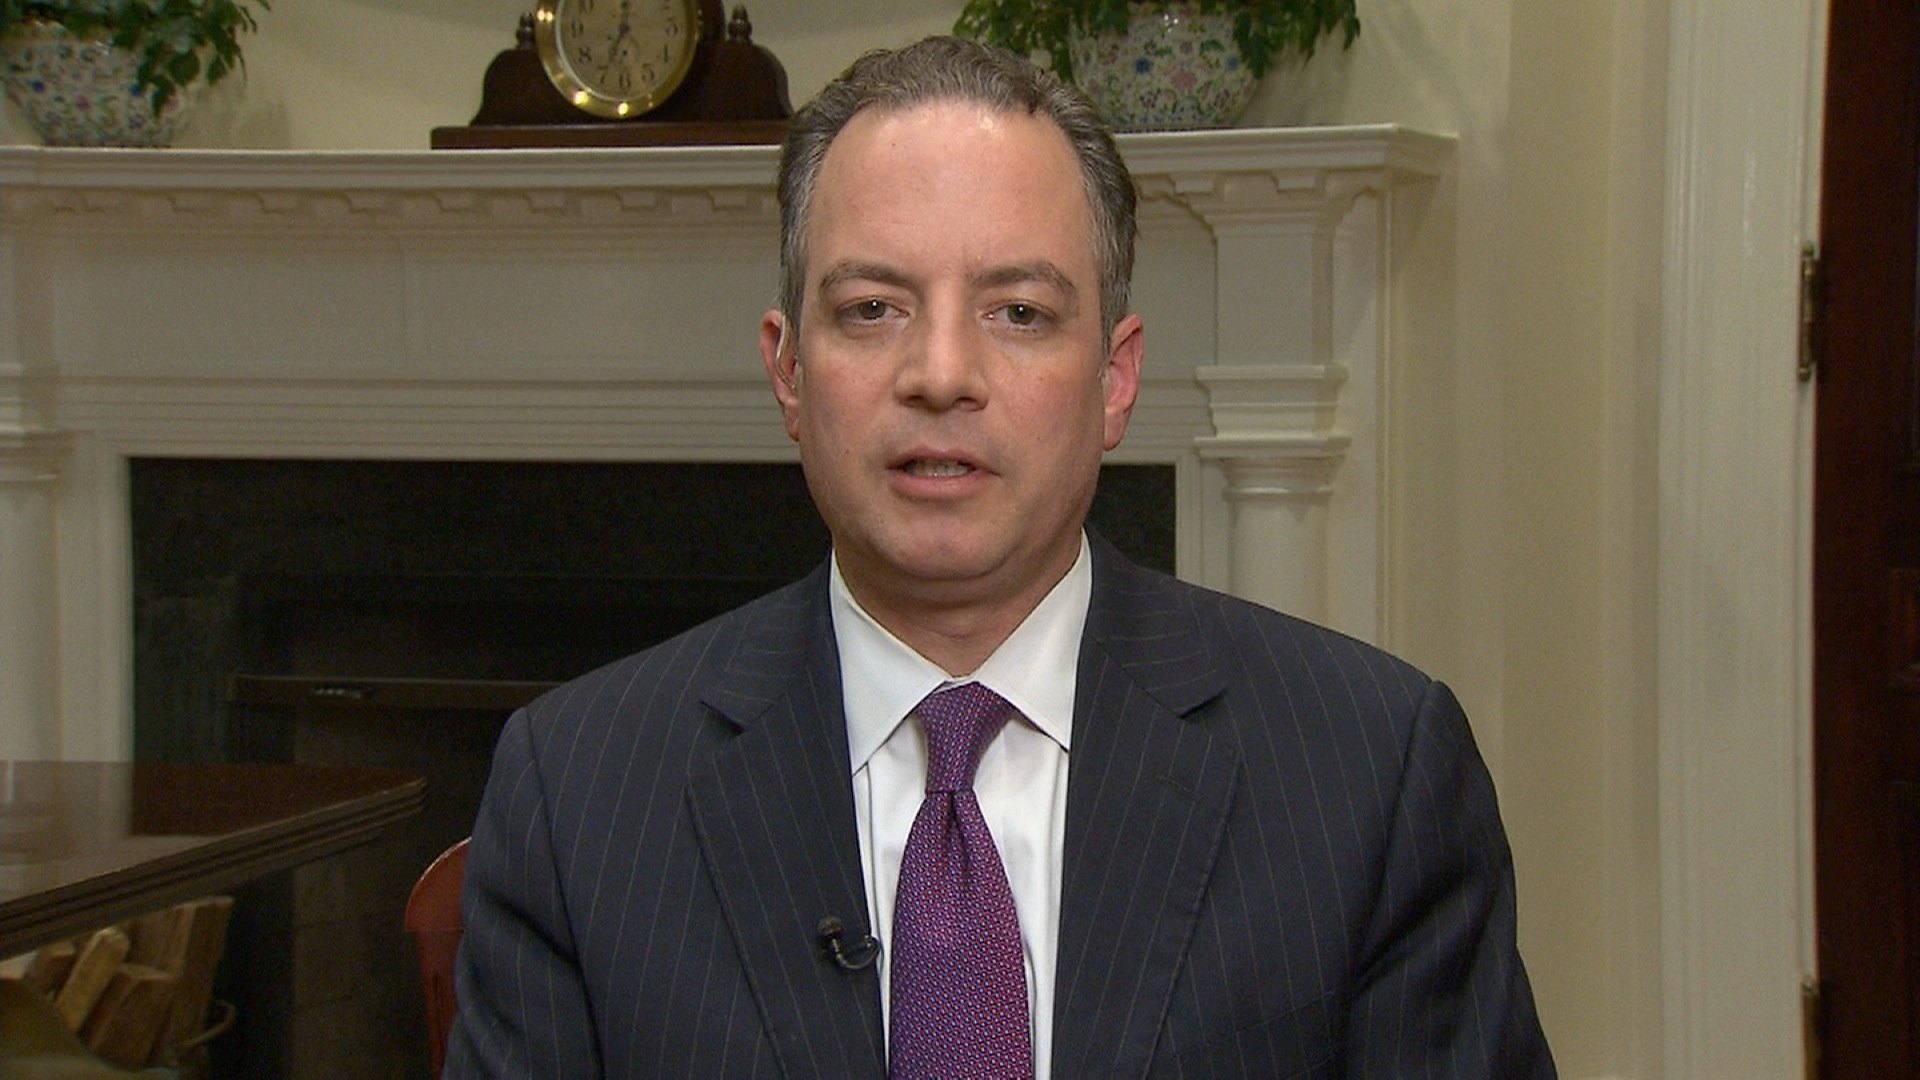 Priebus Allies: White House Chaos 'Unsustainable,' Trump 'Demeaned' Him